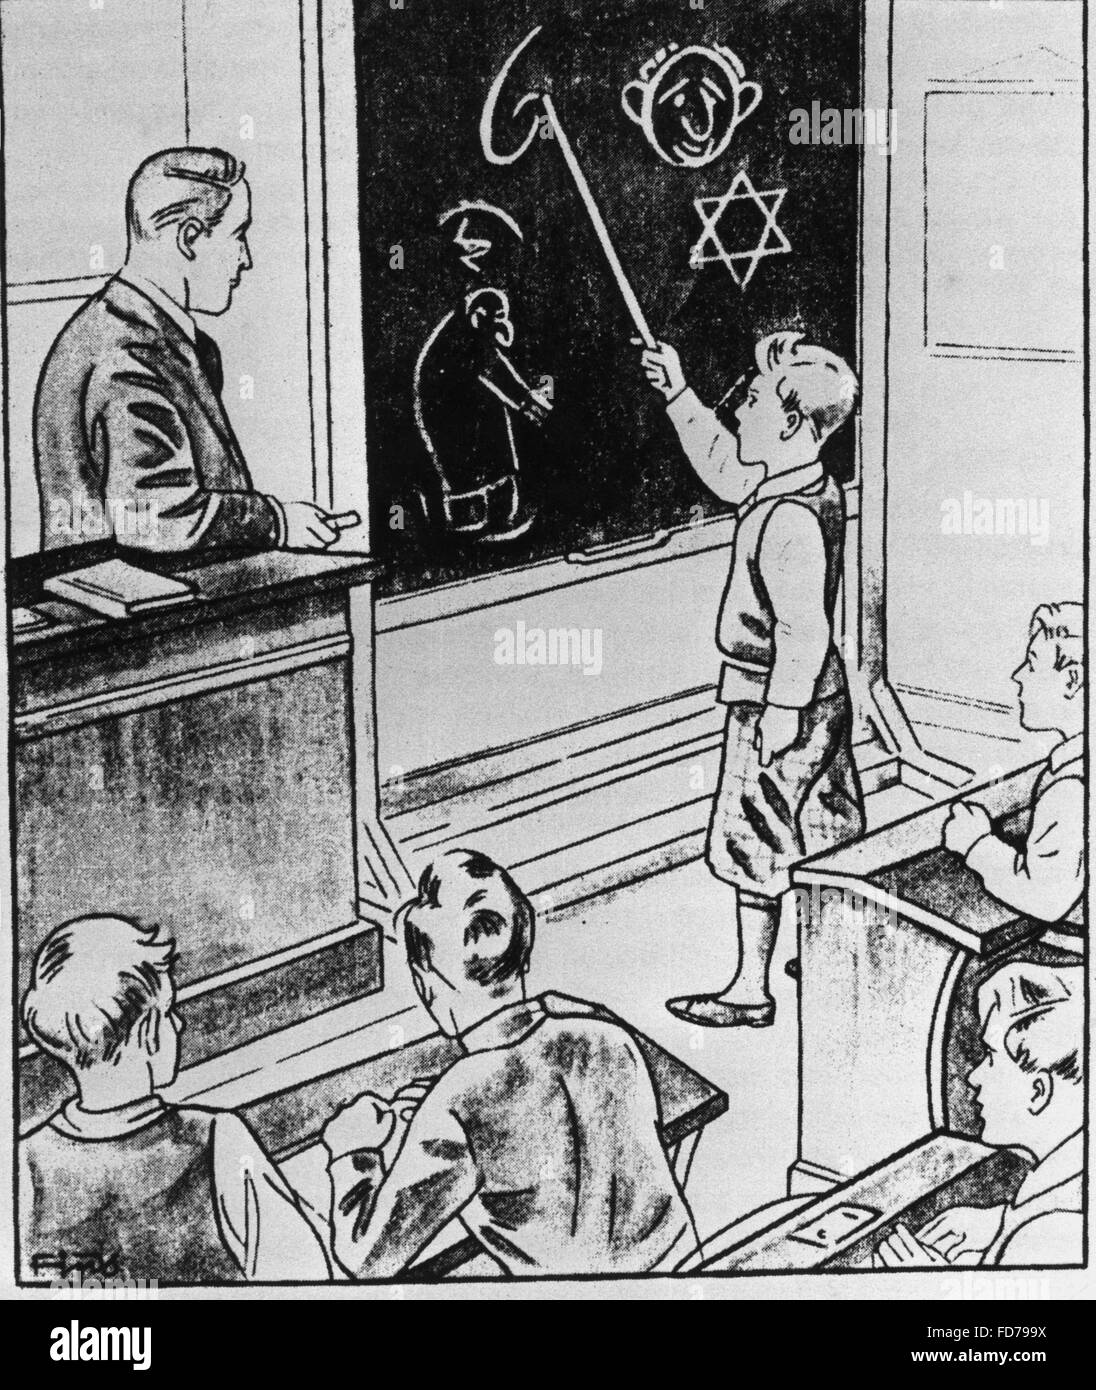 Antisemitic school illustration from the magazine 'Fips' - Stock Image